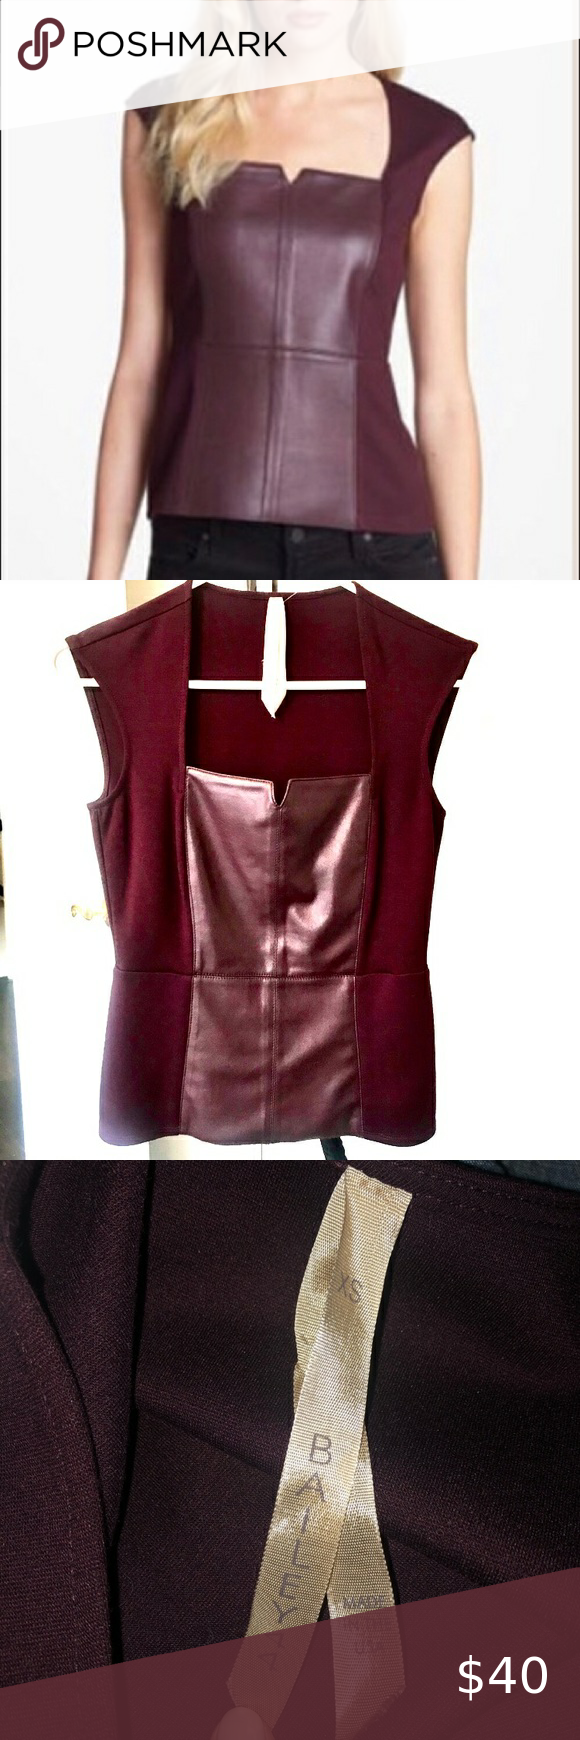 Bailey 44 Wine LEGACY of Terror Leather Bustier XS